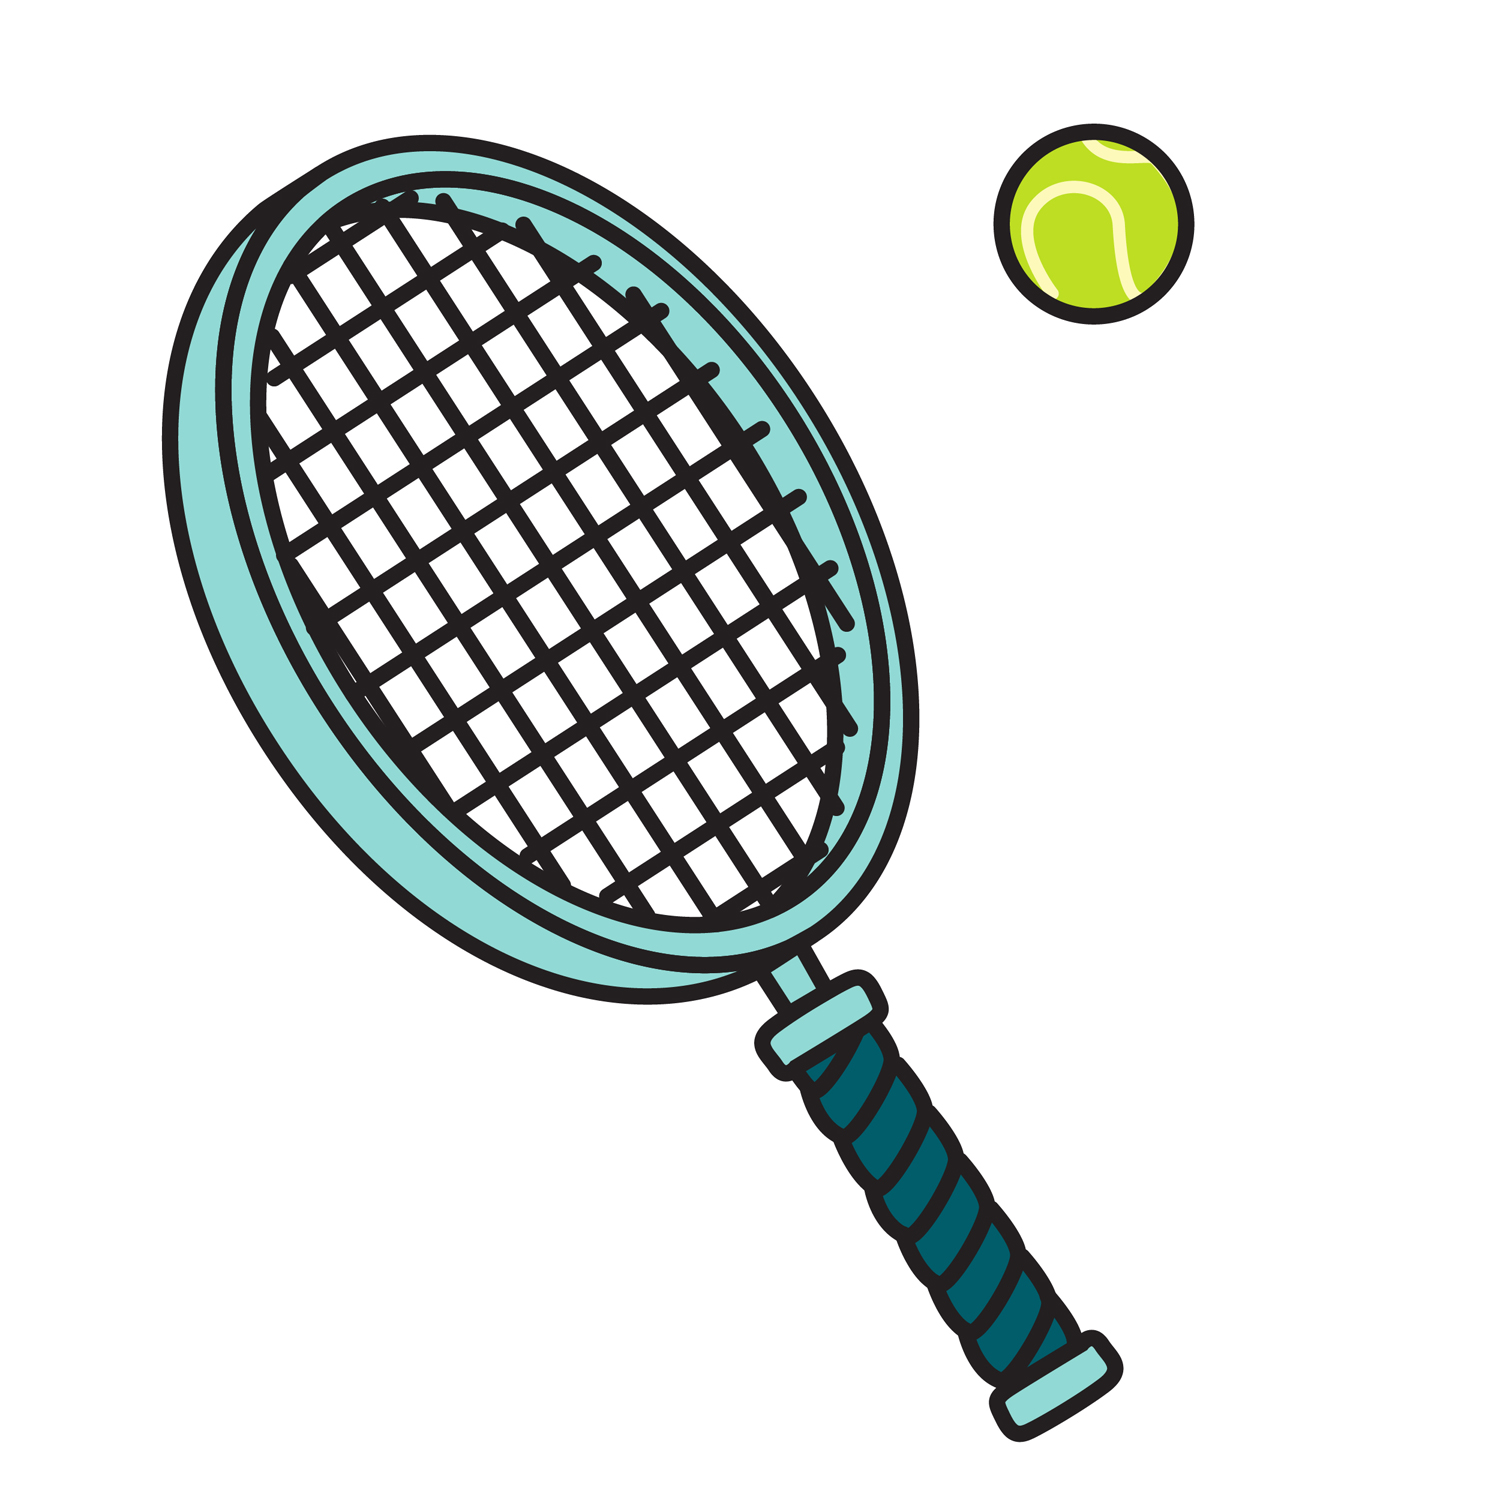 Racket With A Green Tennis Ball  Perfect For Your Tennis Clipart Needs